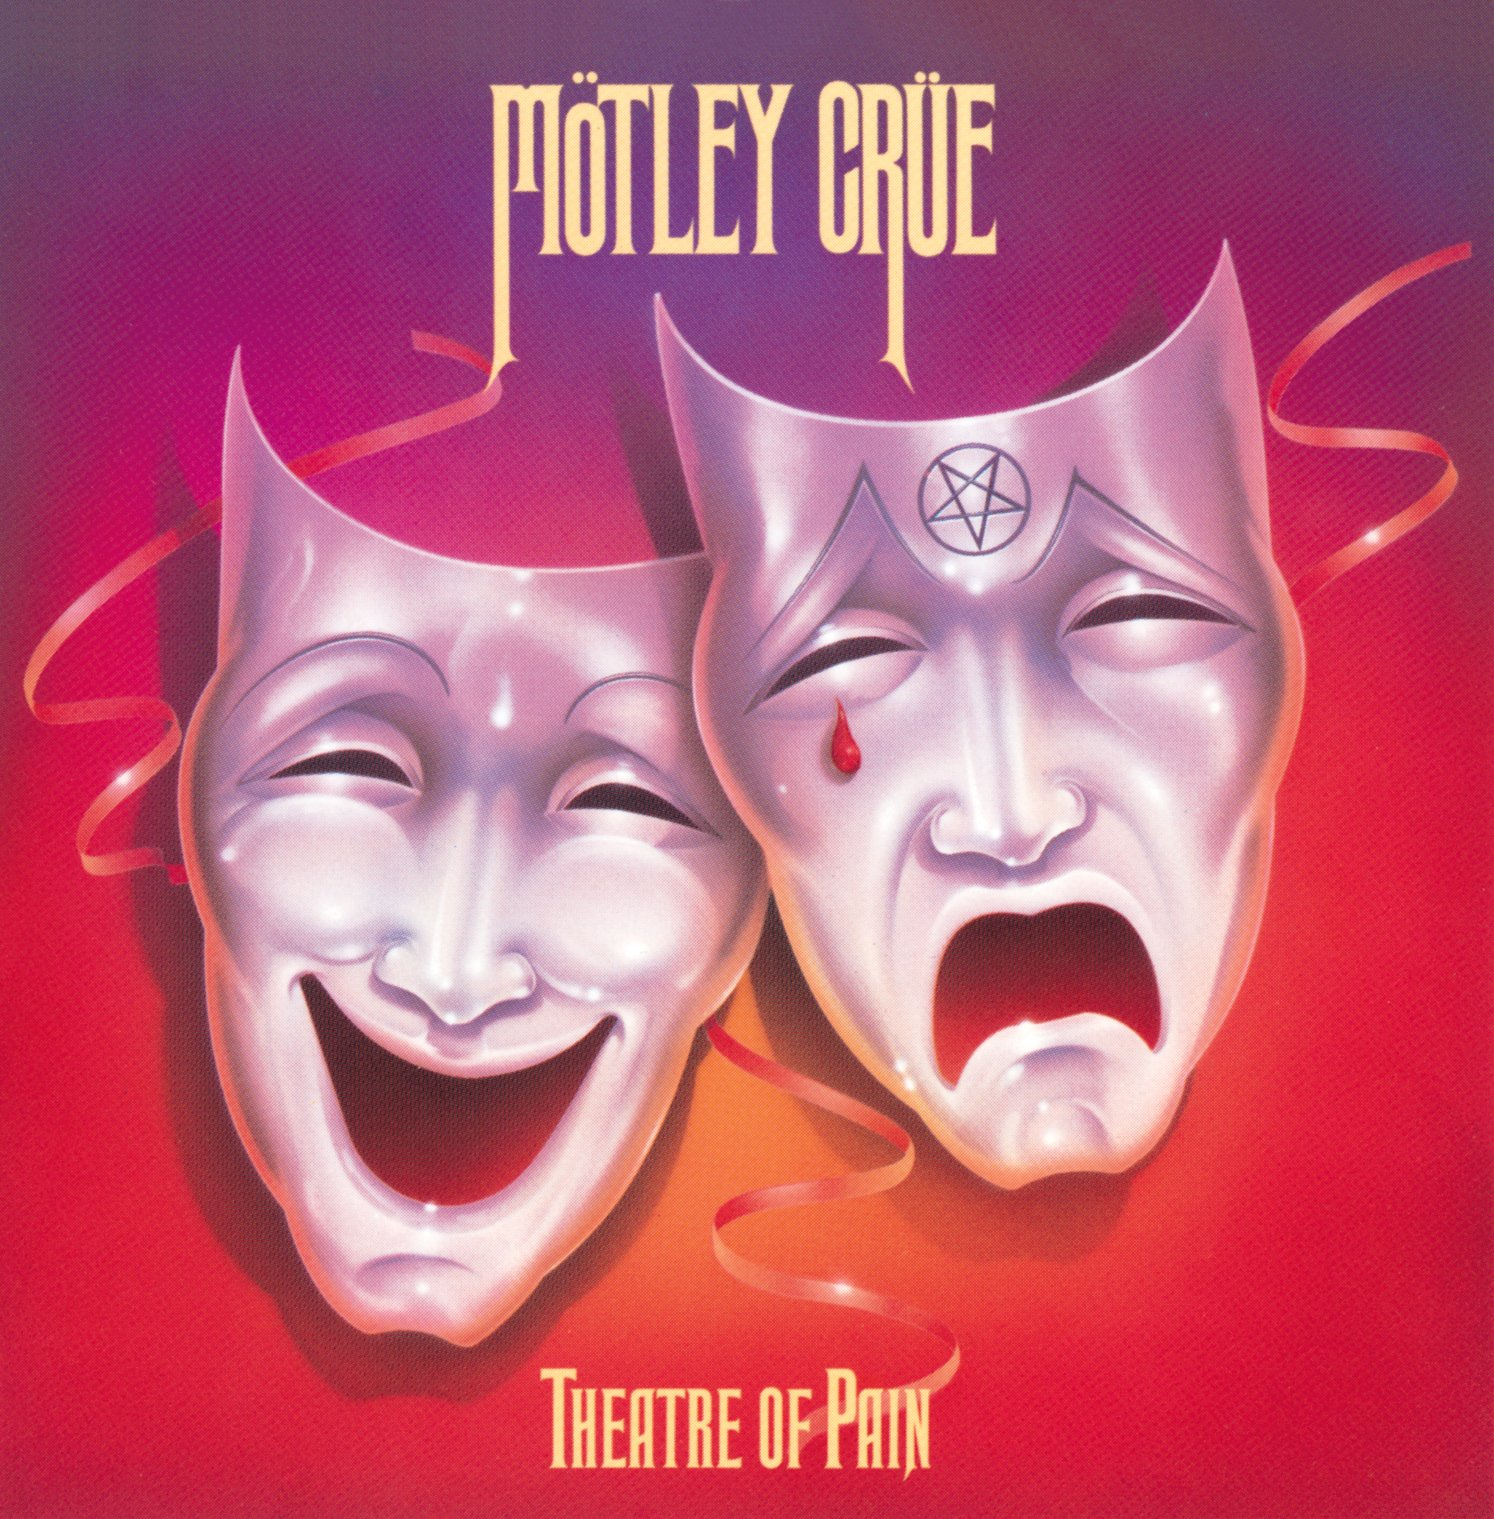 CD : Motley Crue - Theatre of Pain (CD)